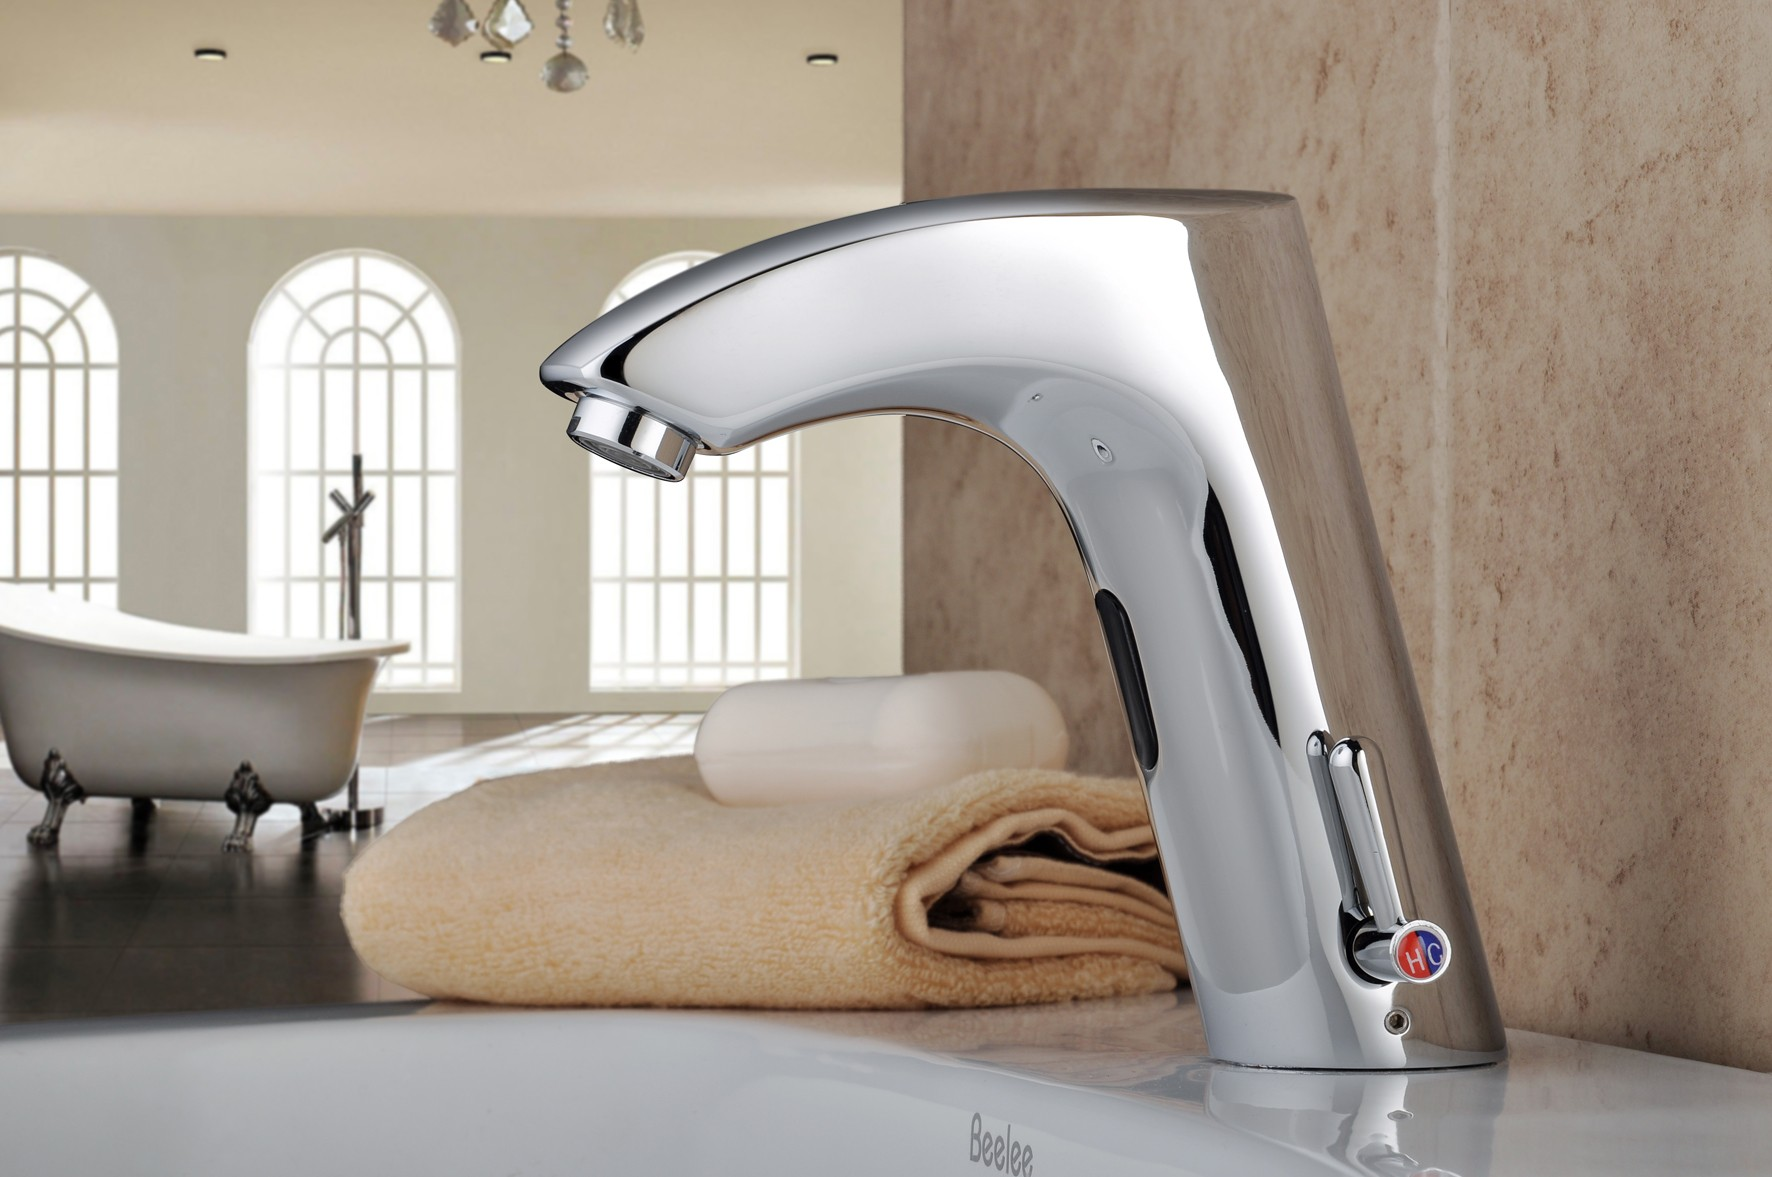 ... Chrome Finish Brass Bathroom Sink Automatic Faucet With Sensor  Activated(Hot And Cold) FA0112BA ...